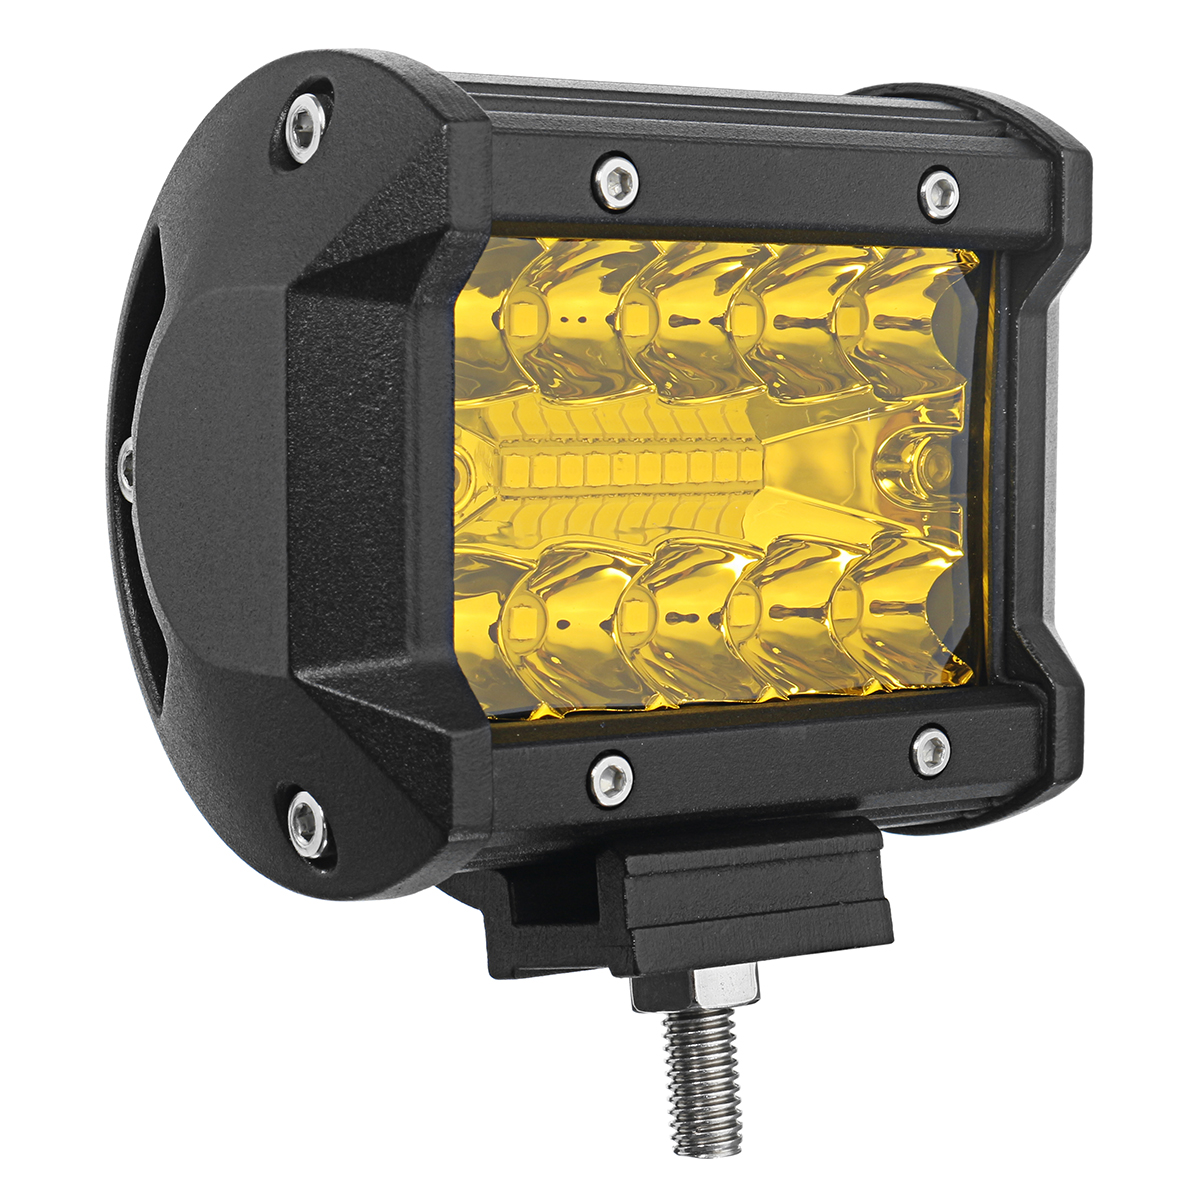 Pair DC 9-32V Yellow 4Inch Tri Row 20 LED Work Lights Bar Flood Spot Combo Lamp for Car Offroad SUV